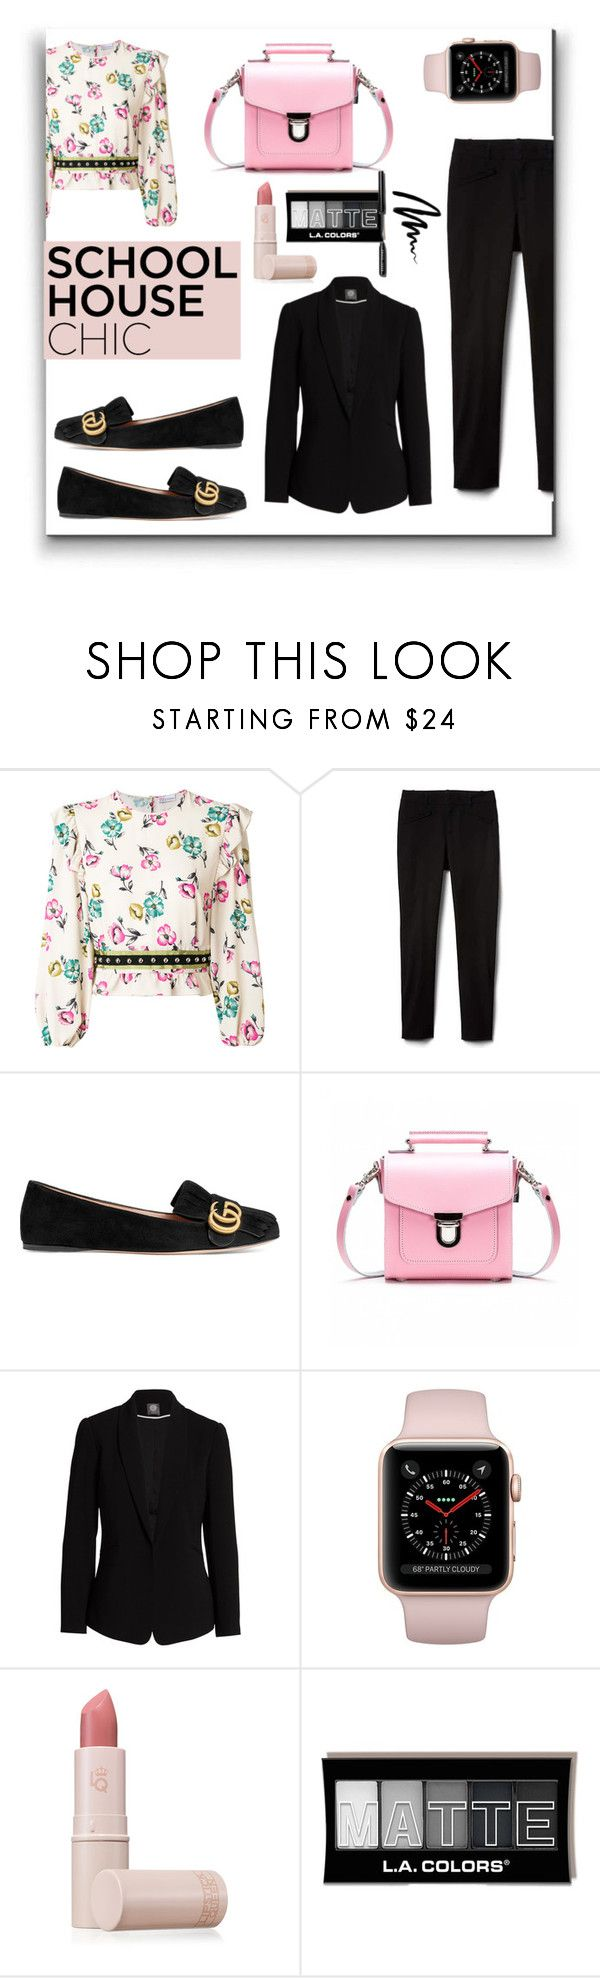 """""""Finals Season"""" by kelly-floramoon-legg ❤ liked on Polyvore featuring RED Valentino, Gucci, Vince Camuto, Lipstick Queen, Bobbi Brown Cosmetics, finals and polyvoreeditorial"""